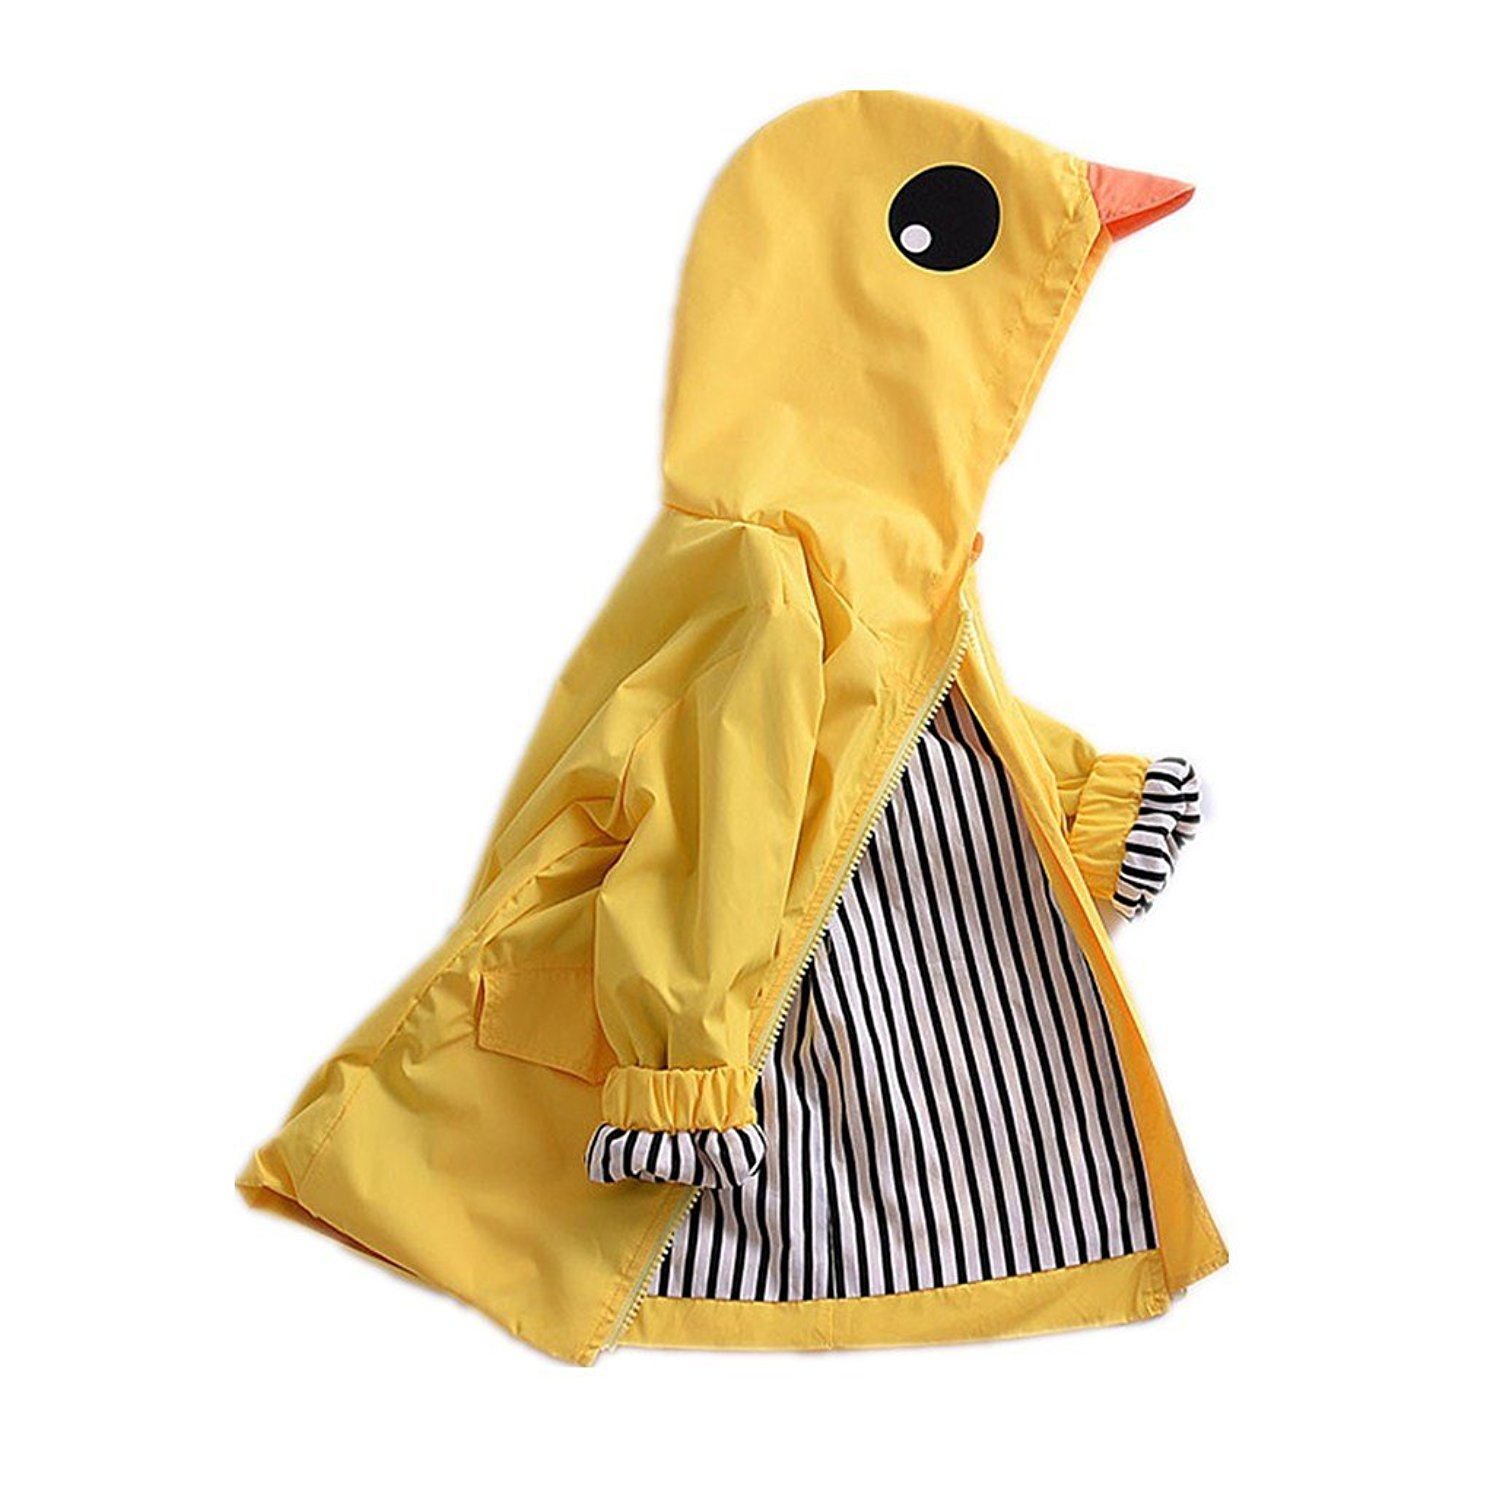 YOUNGER TREE Toddler Baby Boy Girl Duck Raincoat Cute Cartoon Hoodie Zipper Coat Outfit (Yellow, 110) by YOUNGER TREE